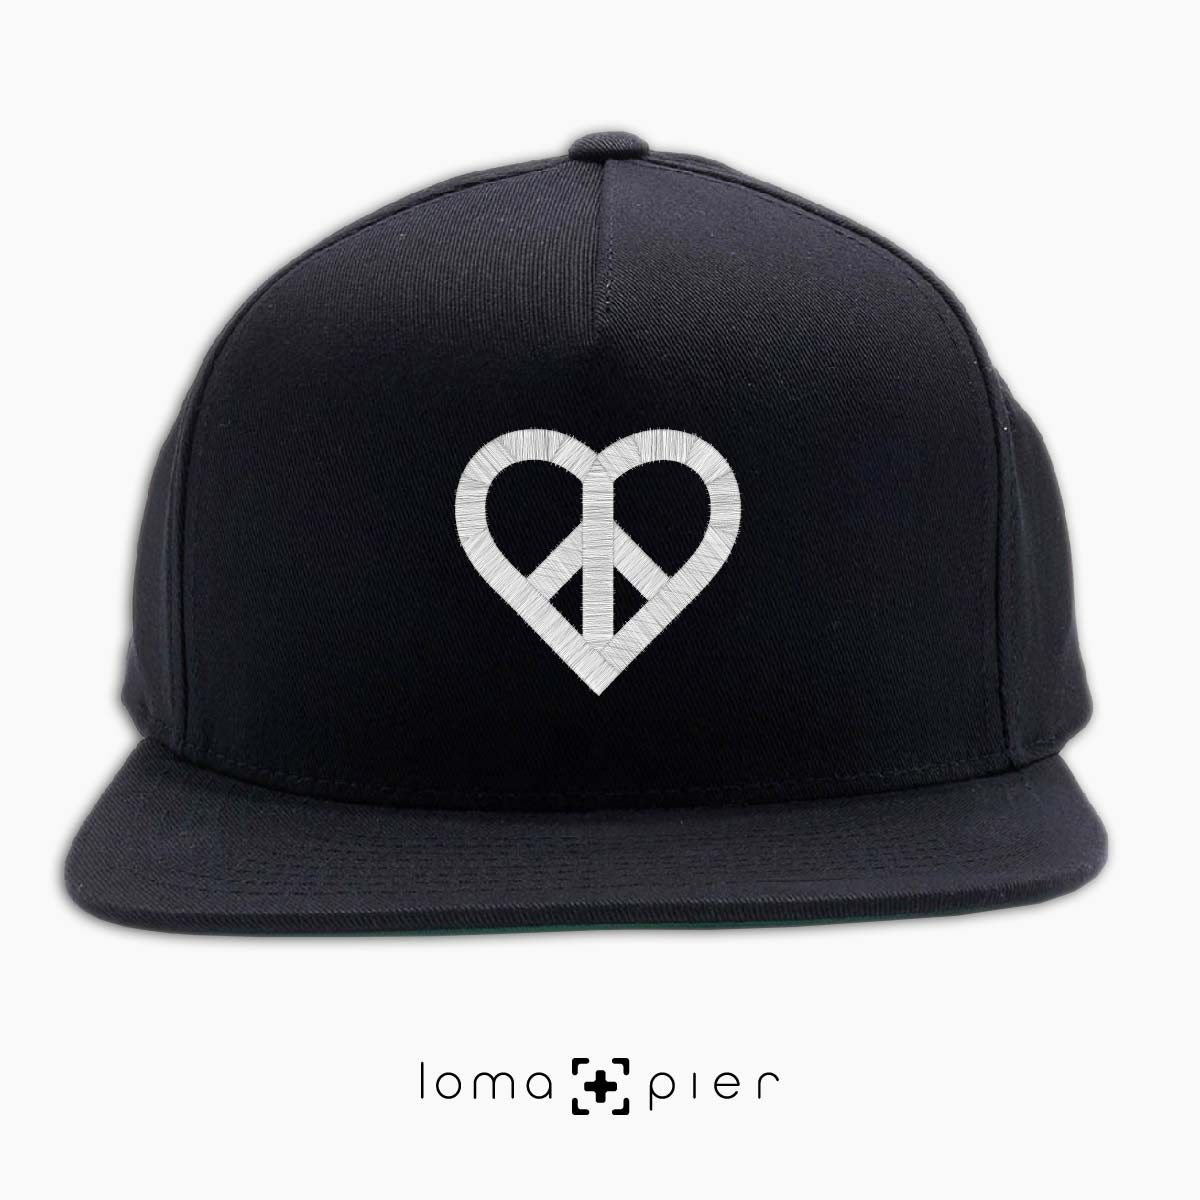 HEART and PEACE SIGN icon snapback hat by loma and pier hat shop